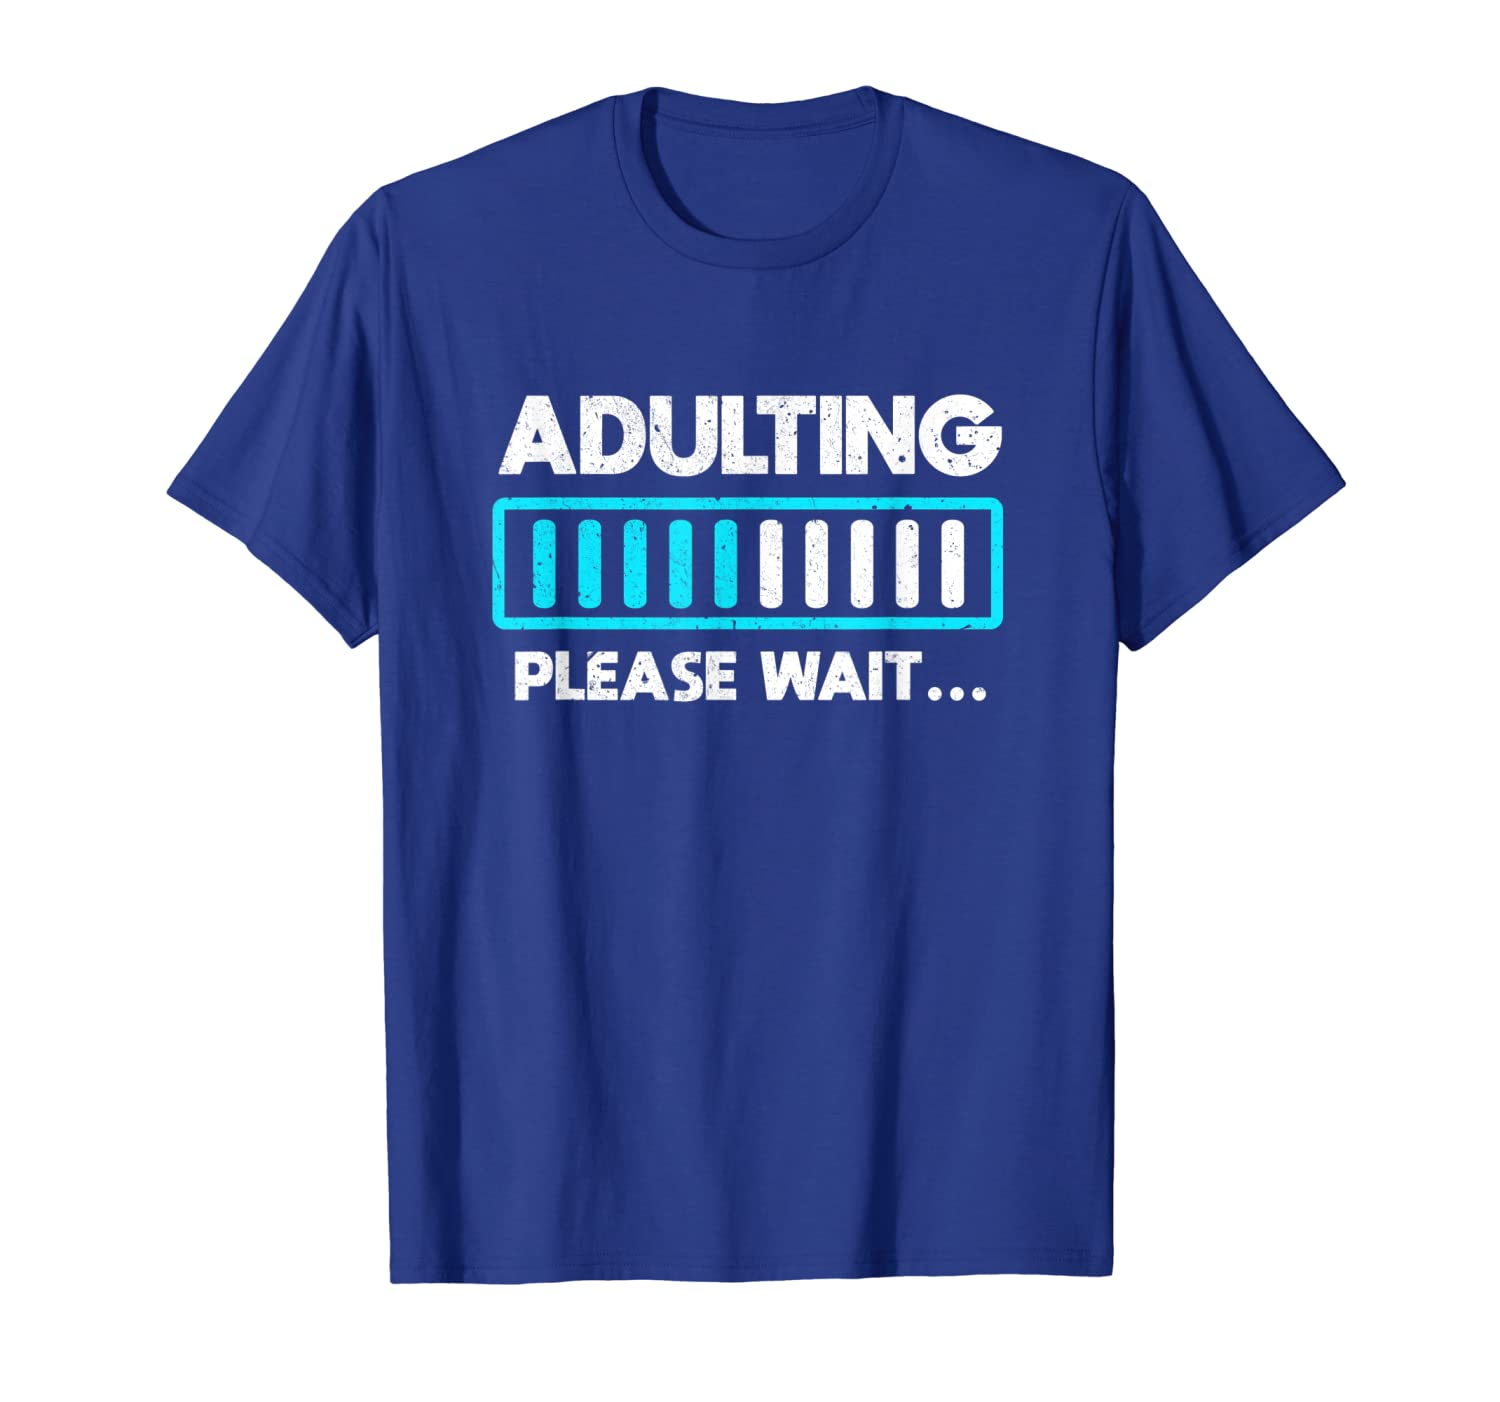 Adulting Please Wait Funny Adult Loading Gift Fun Design T-Shirt-ANZ